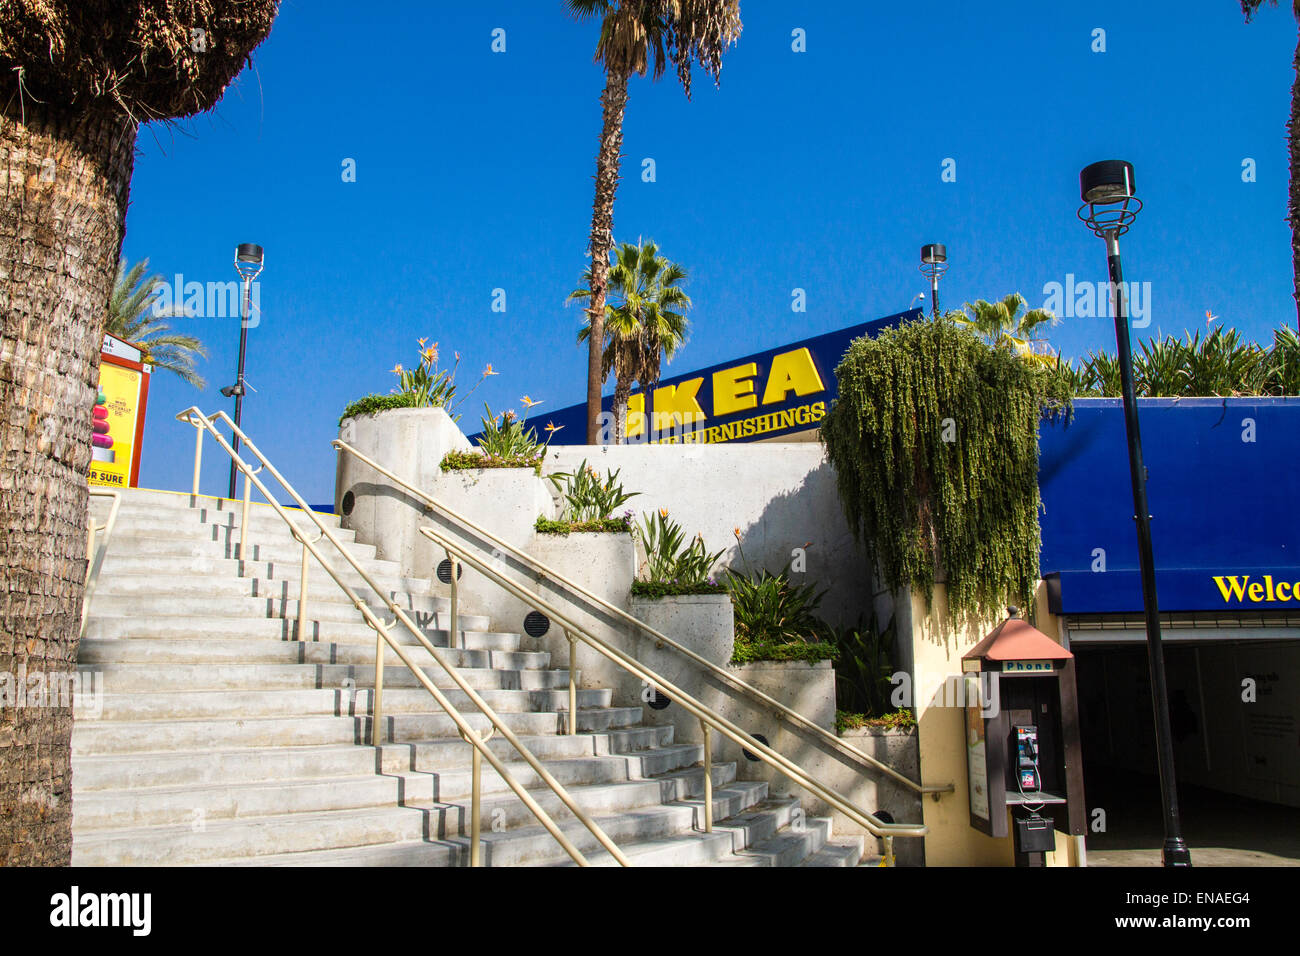 Ikea Palm Tree The Ikea Store In Burbank California With Palm Trees Stock Photo